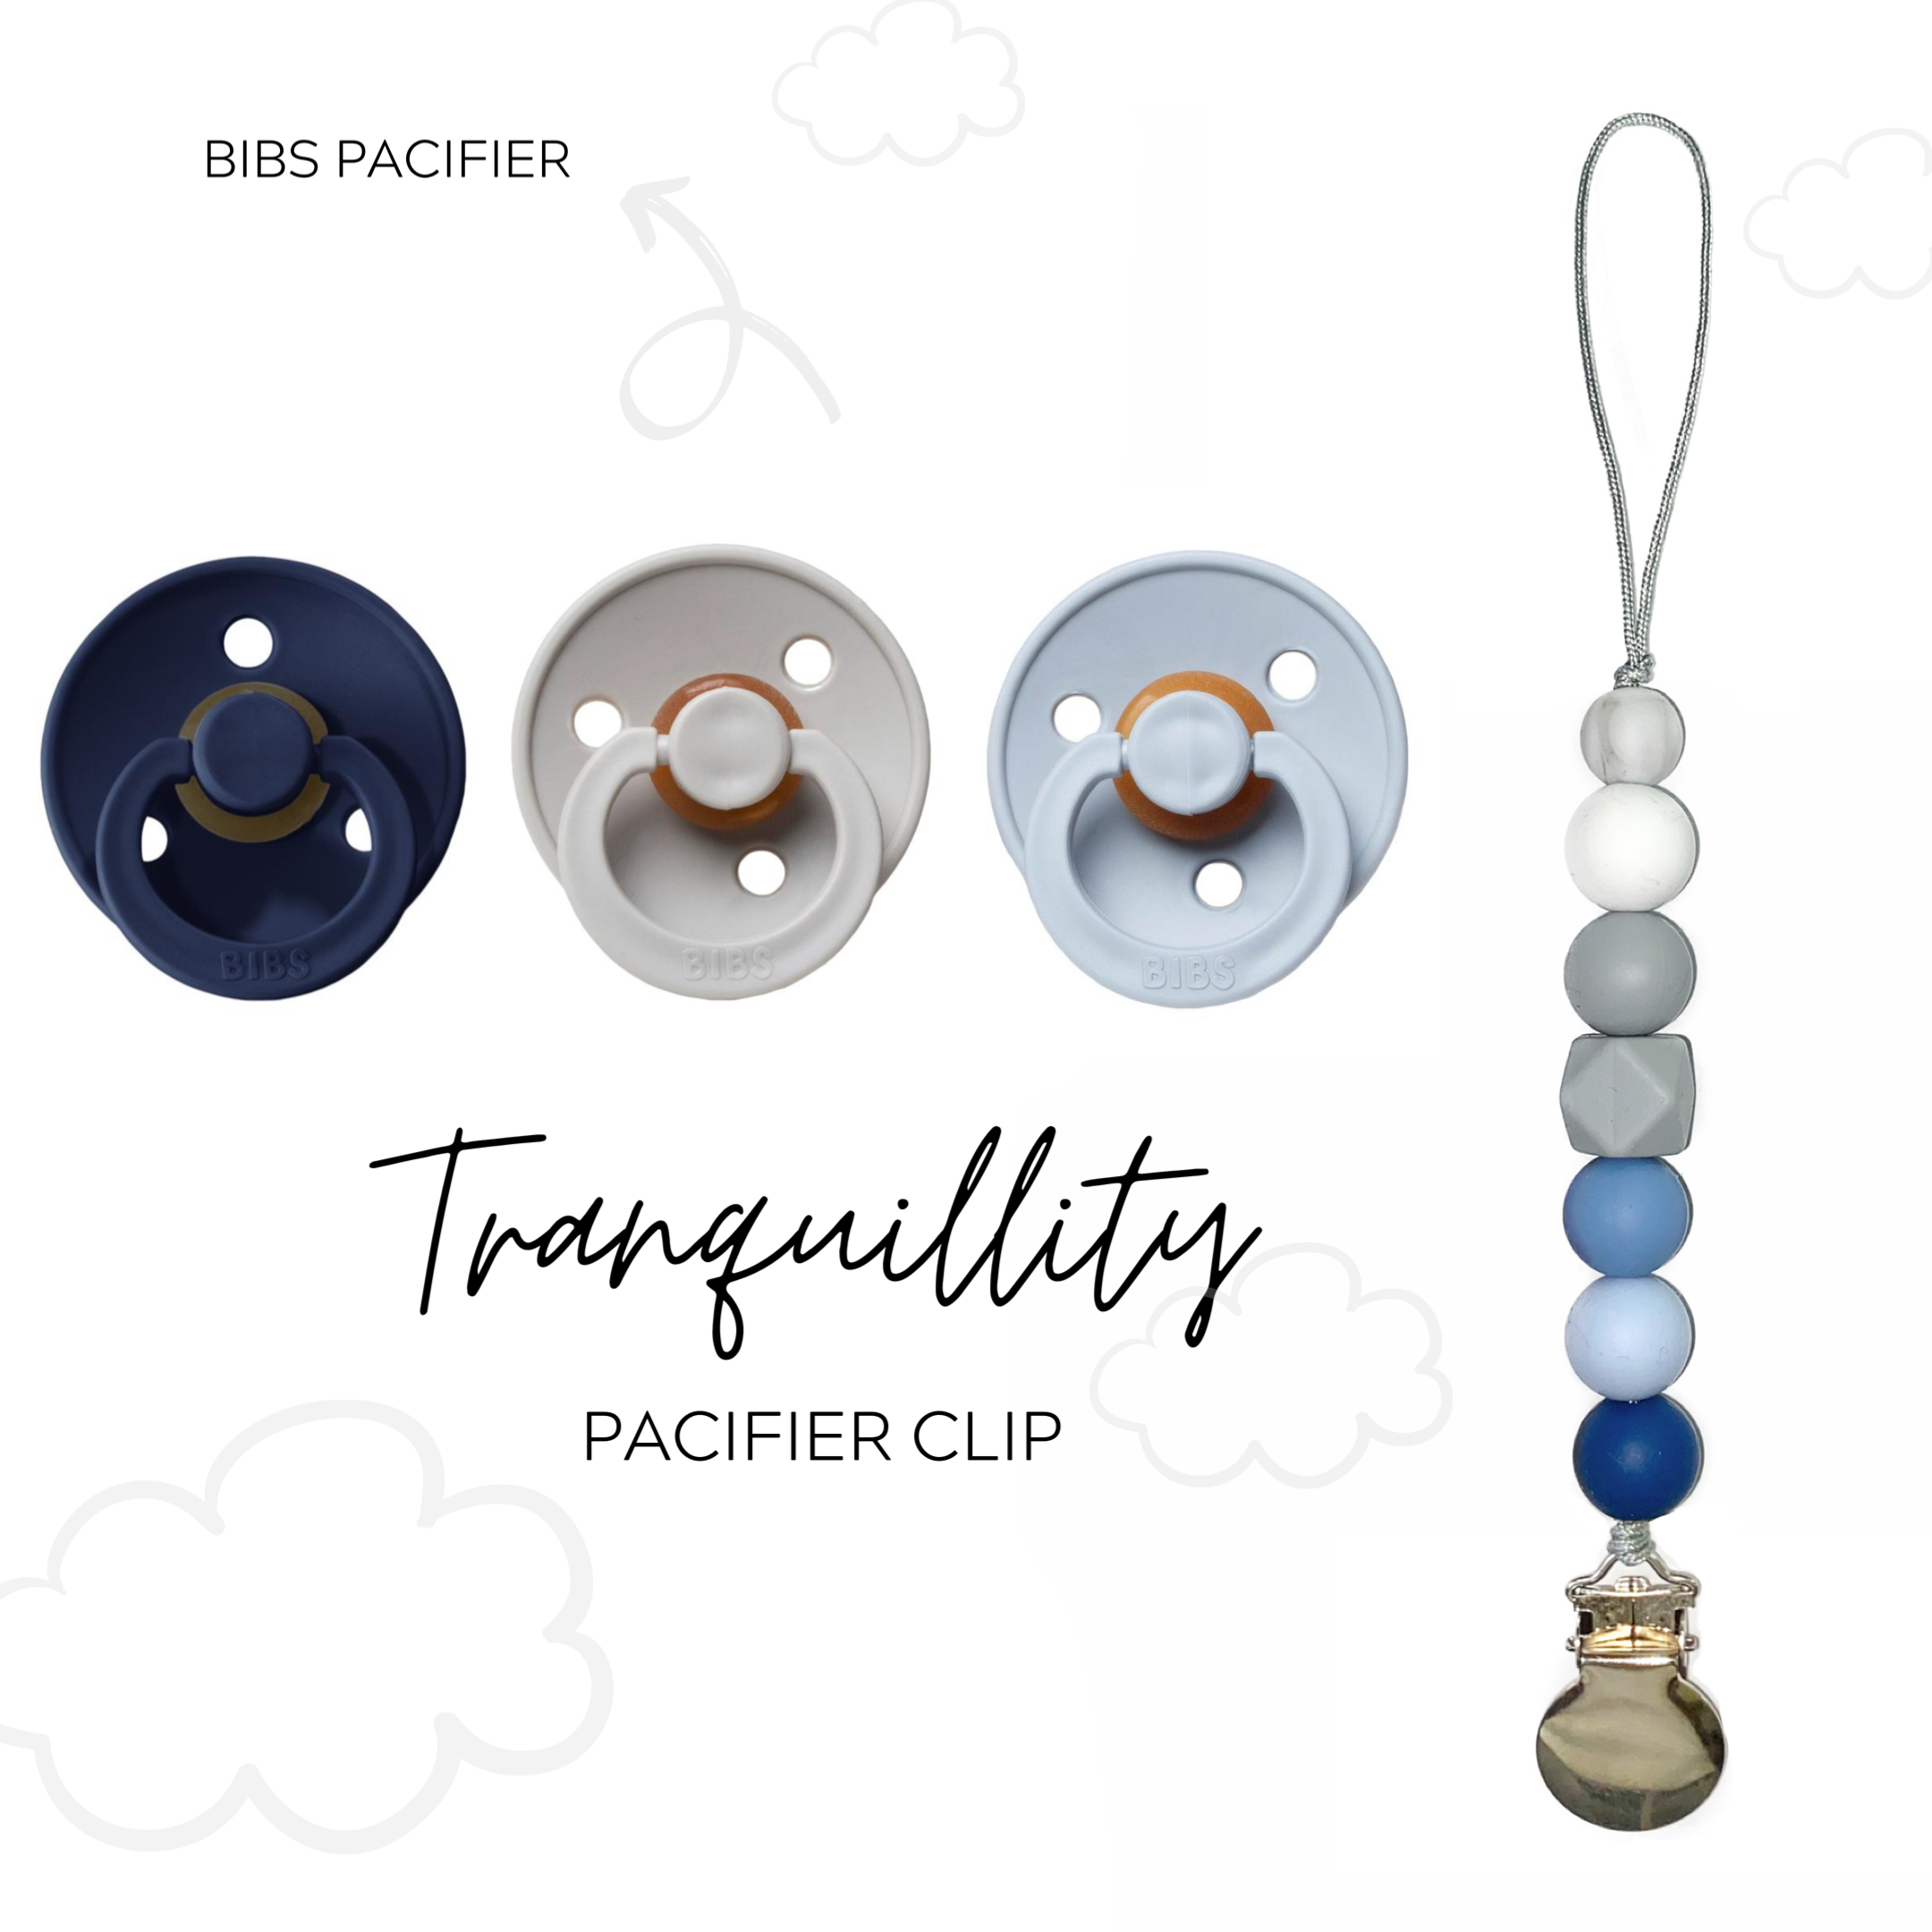 Paci-Clips / Tranquillity